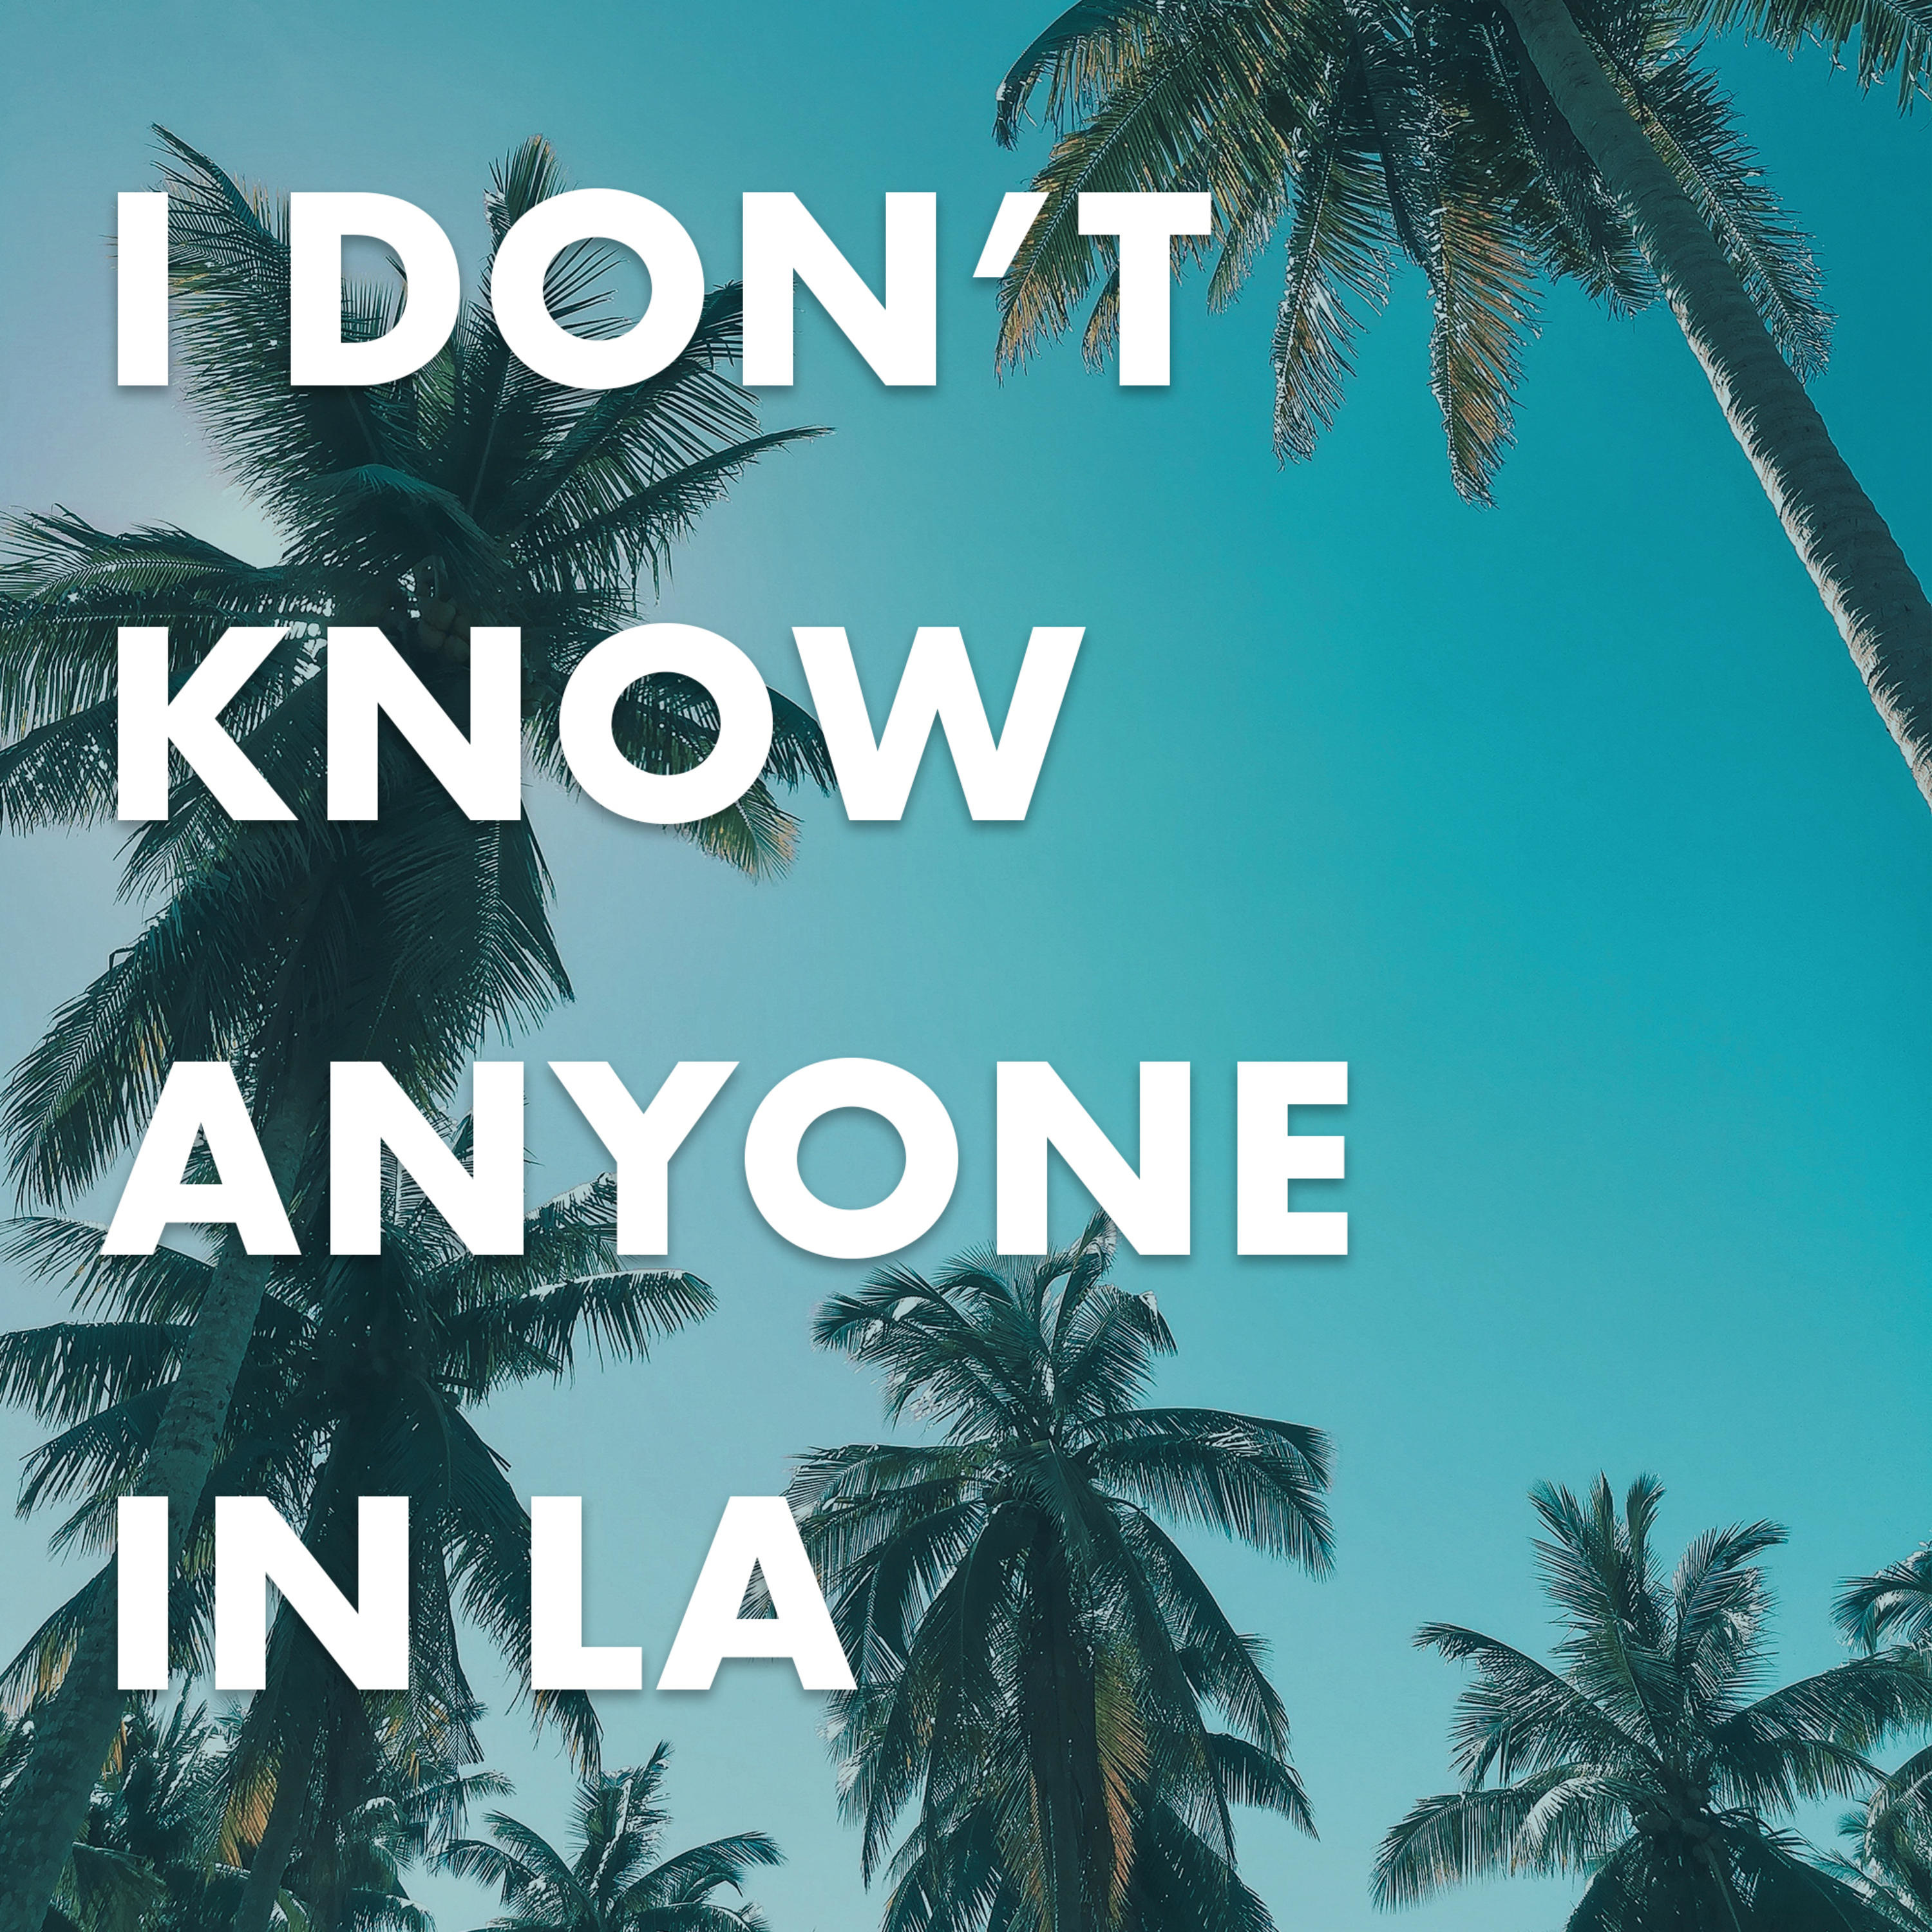 I Don't Know Anyone In LA